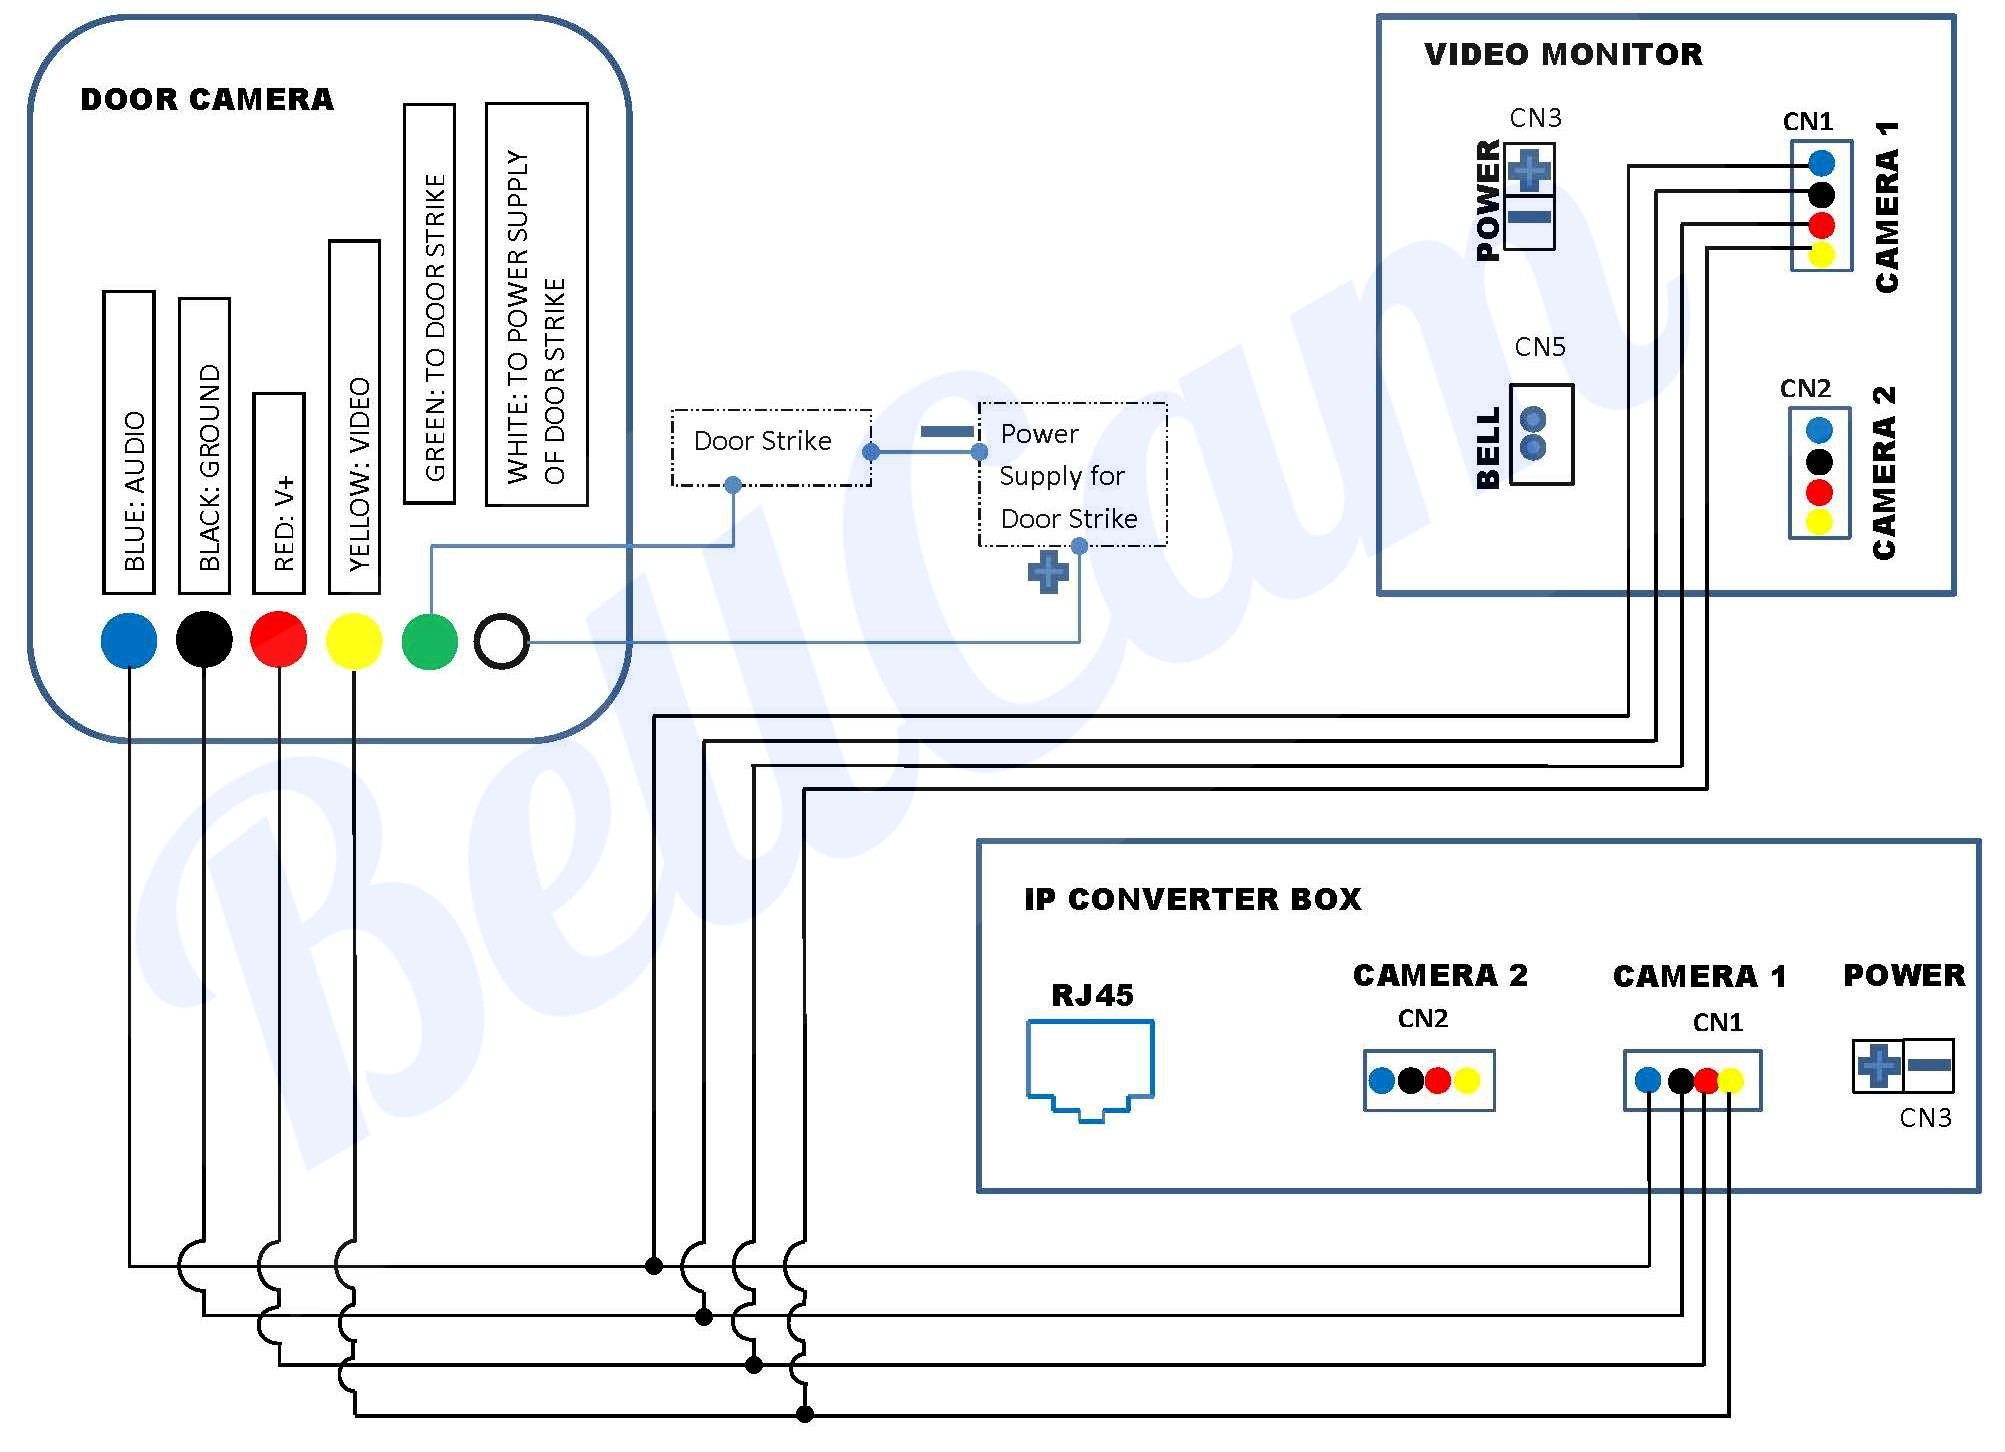 Diagram Cctv Camera Wiring Diagram Full Version Hd Quality Wiring Diagram Pvdiagramguse Portaimprese It